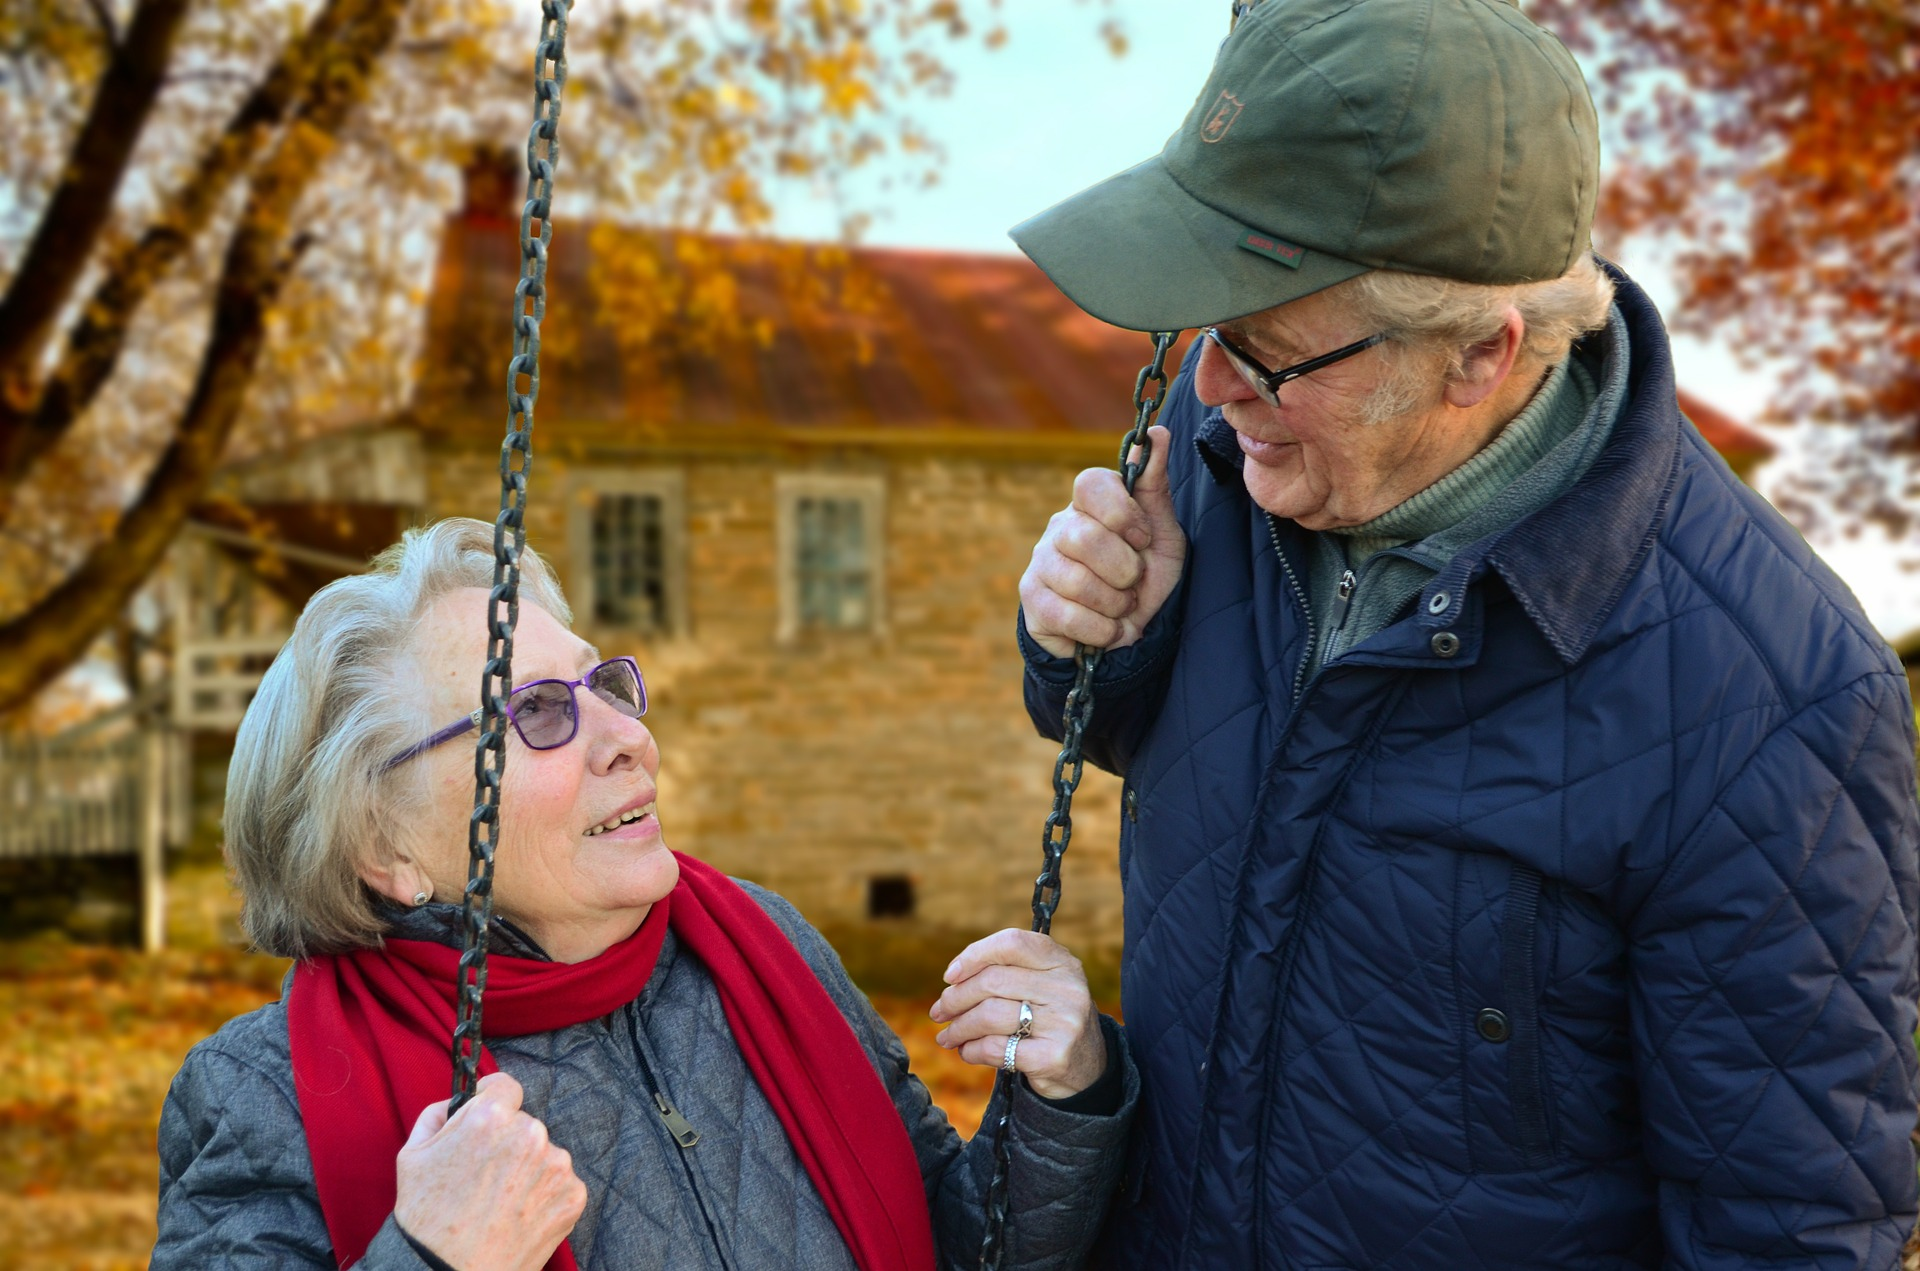 For the first time, experts have demonstrated that healthy older adults can generate just as many neurons as young people.